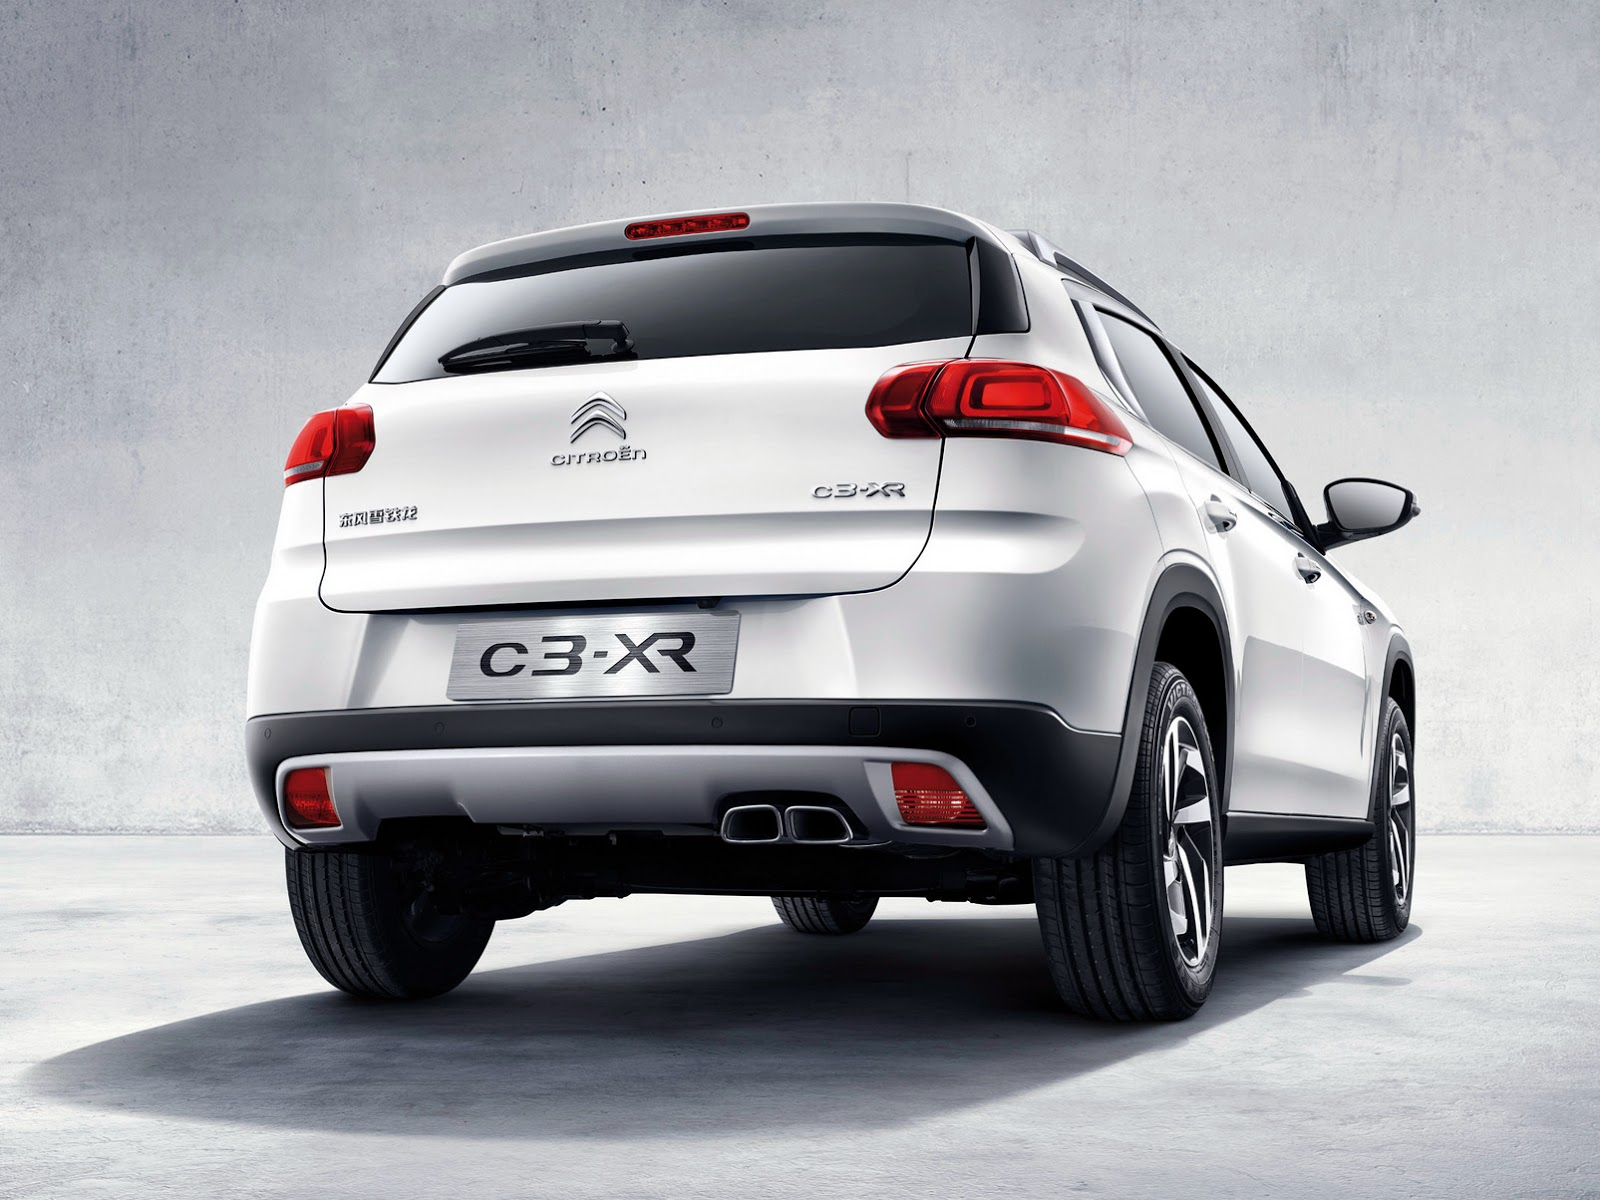 new citroen c3 xr small suv wears its production outfit carscoops. Black Bedroom Furniture Sets. Home Design Ideas